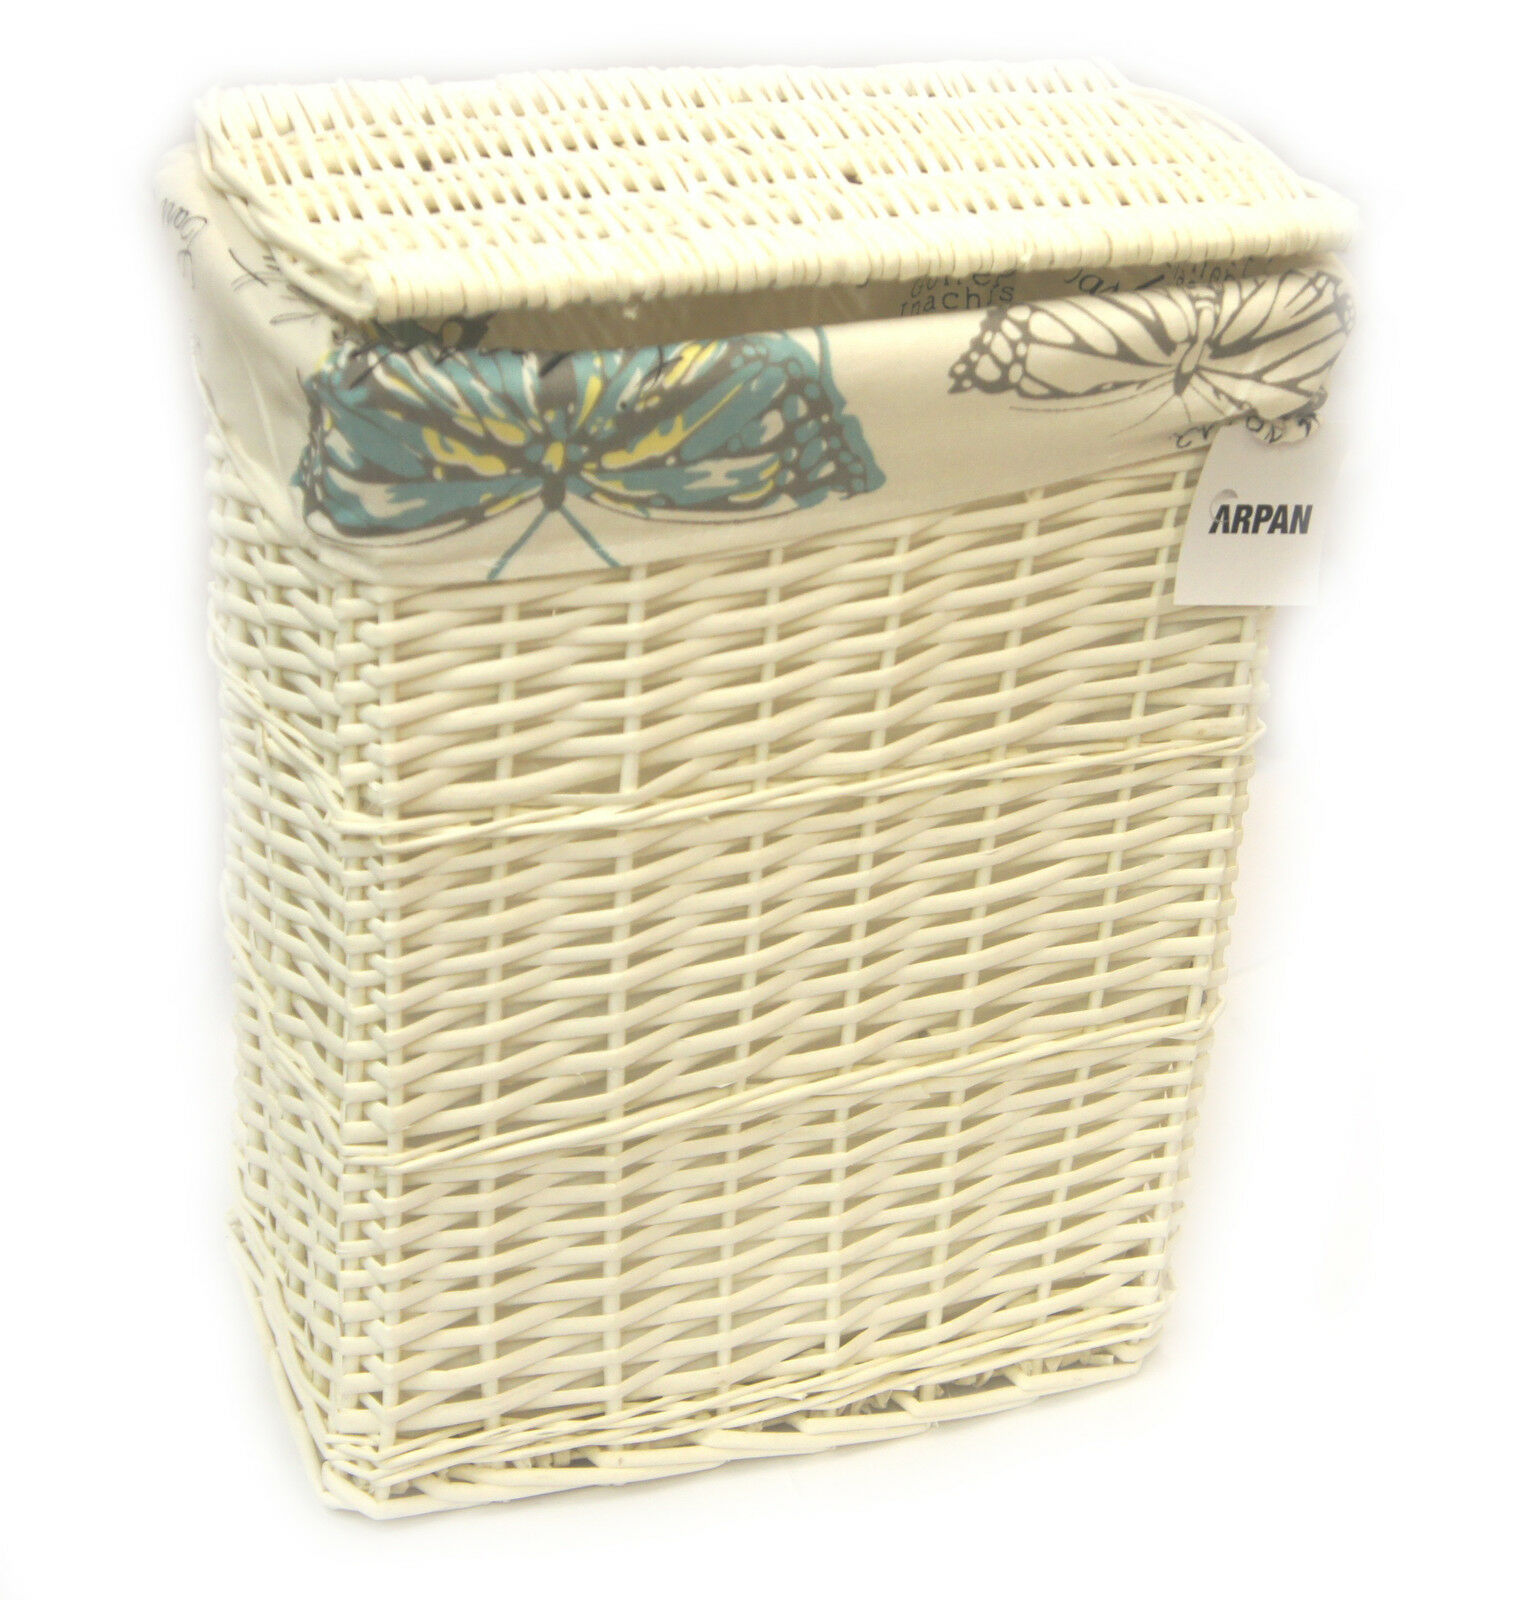 arpan medium white wicker laundry basket with lining vintage butterfly 9358 mbt ebay. Black Bedroom Furniture Sets. Home Design Ideas